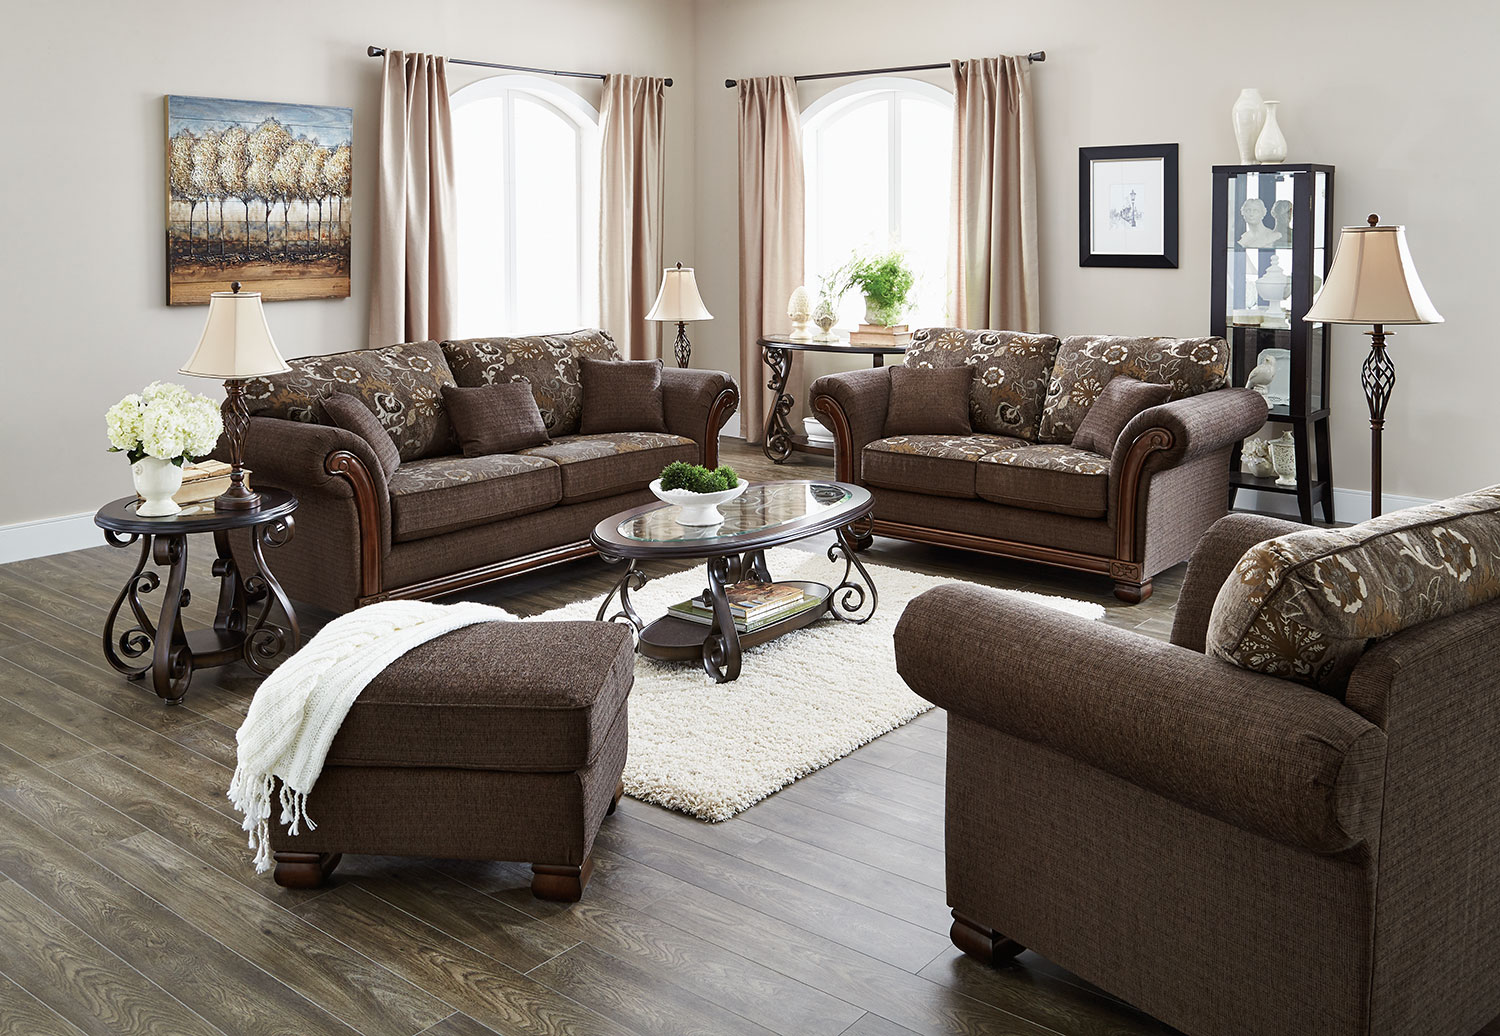 Livingroom Decoration With Brown Leather Sofa Extravagant